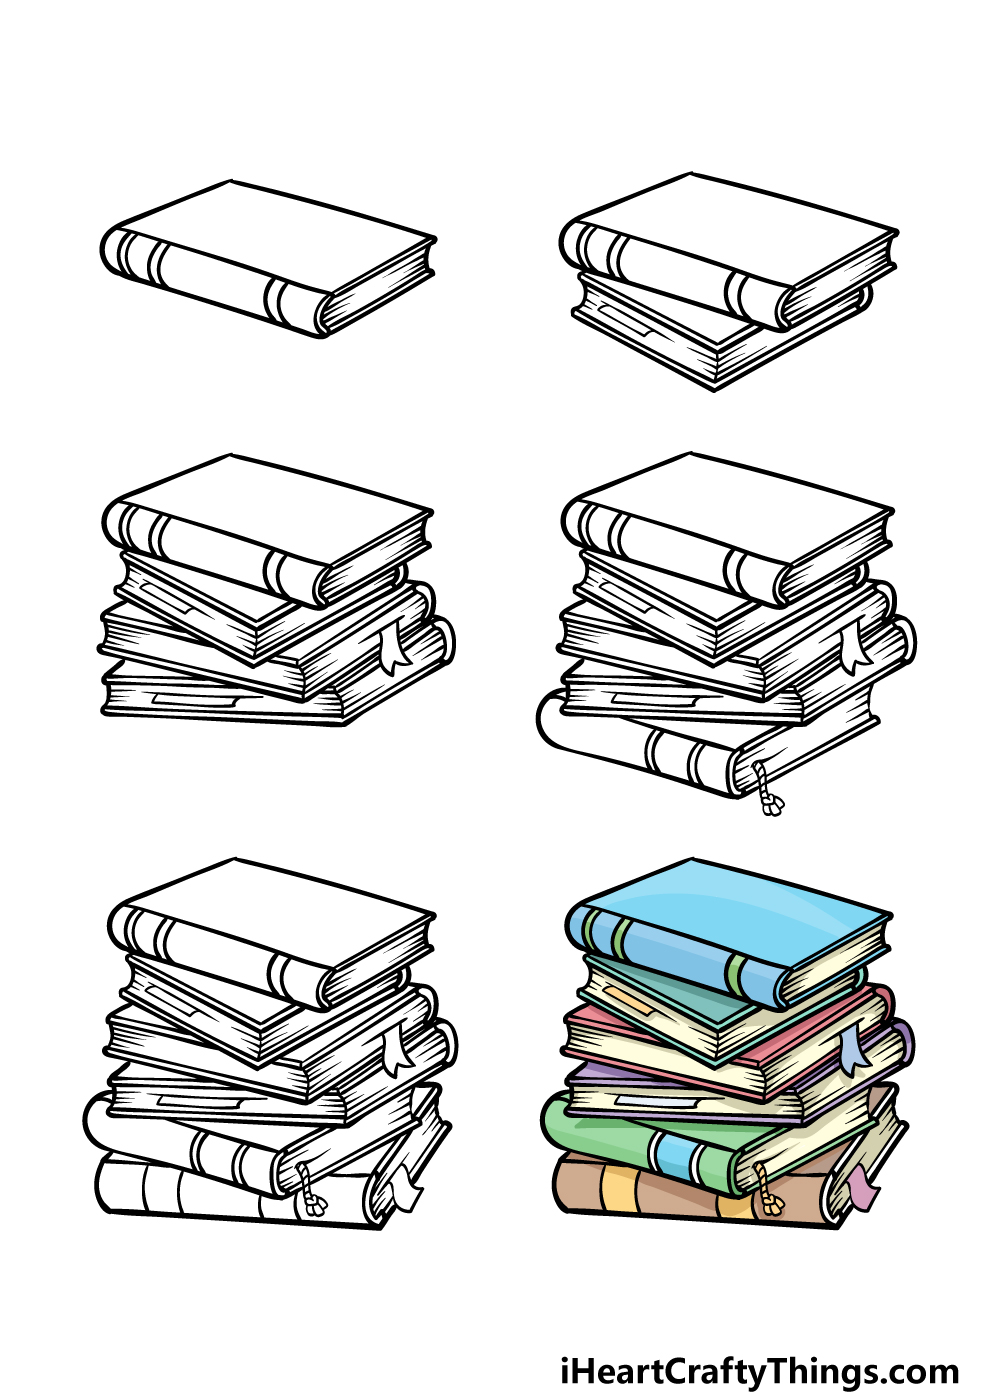 how to draw a stack of books in 6 steps